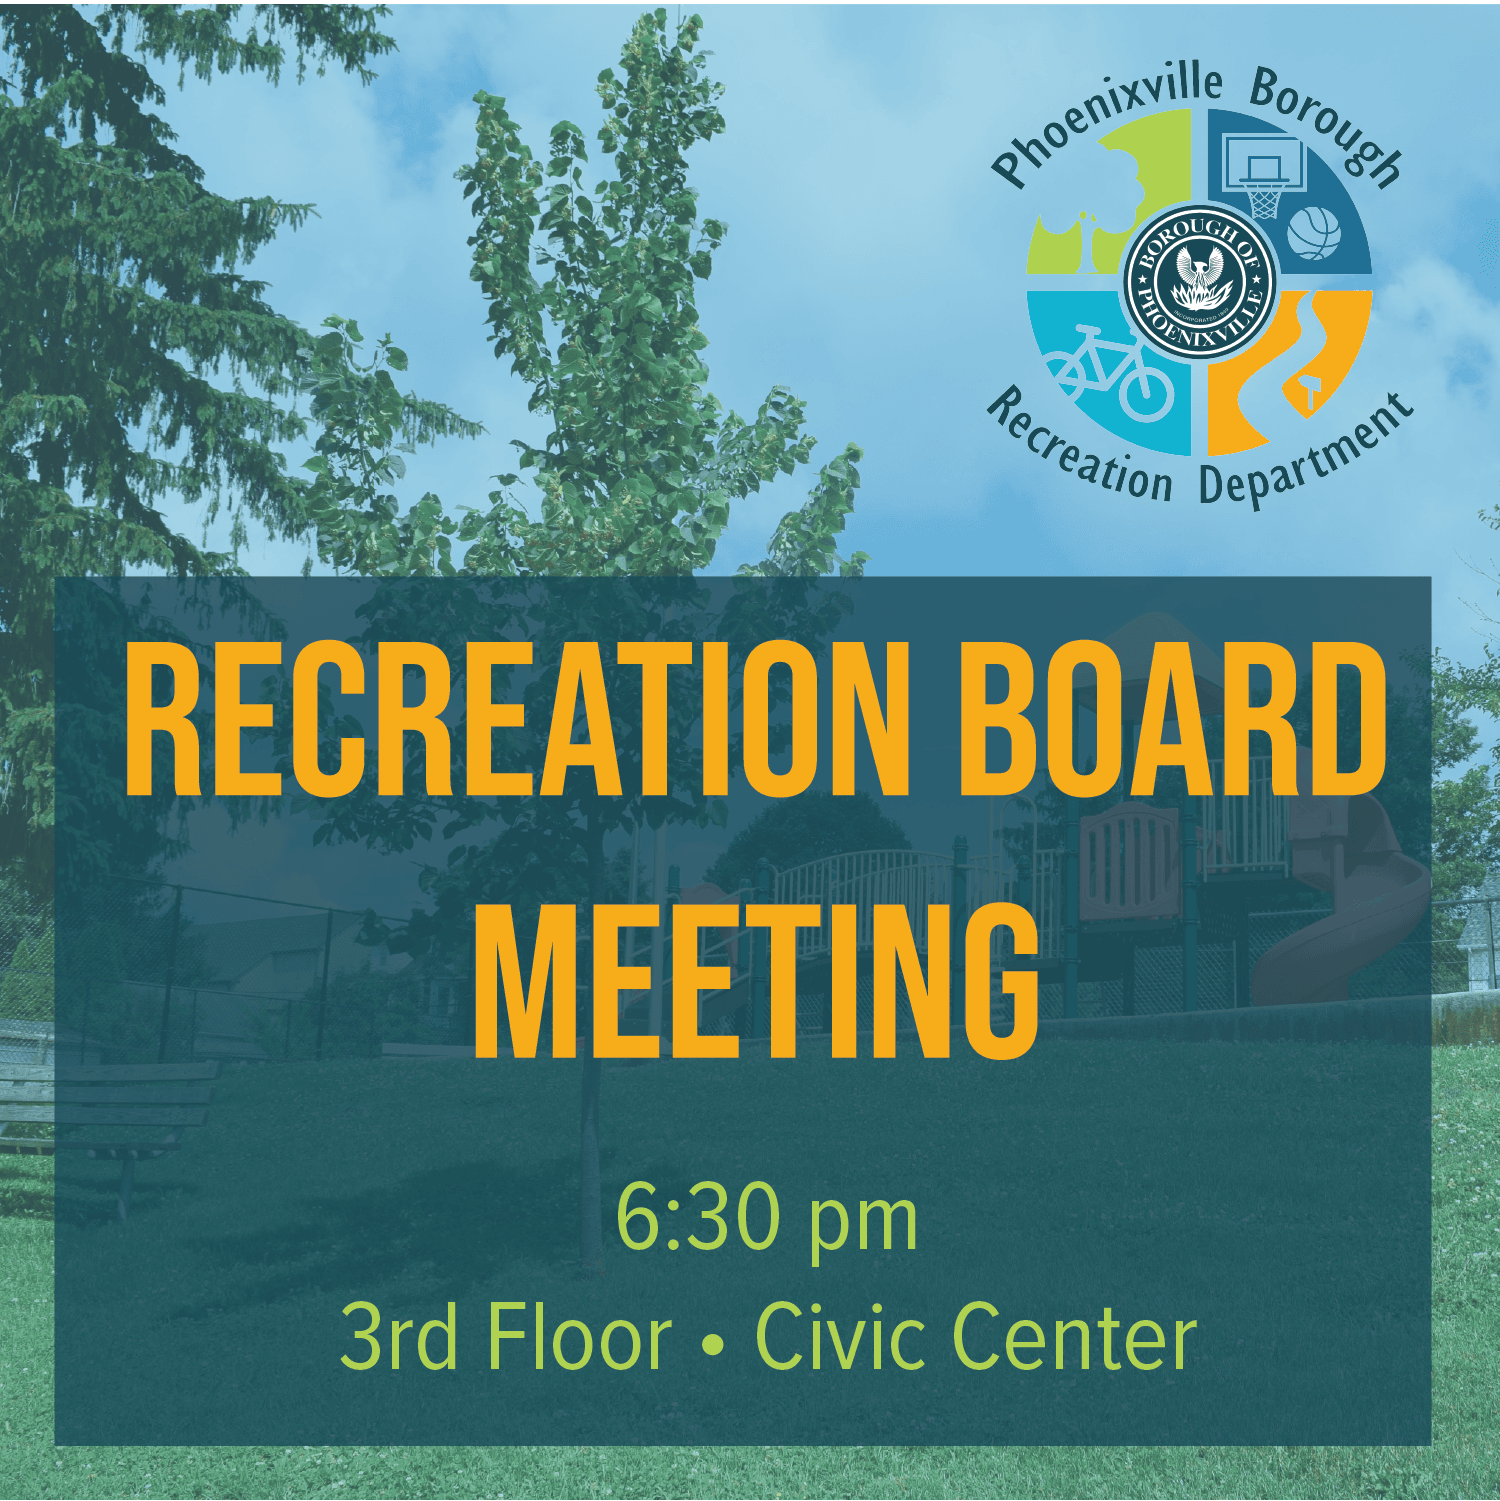 Recreation Board Meeting